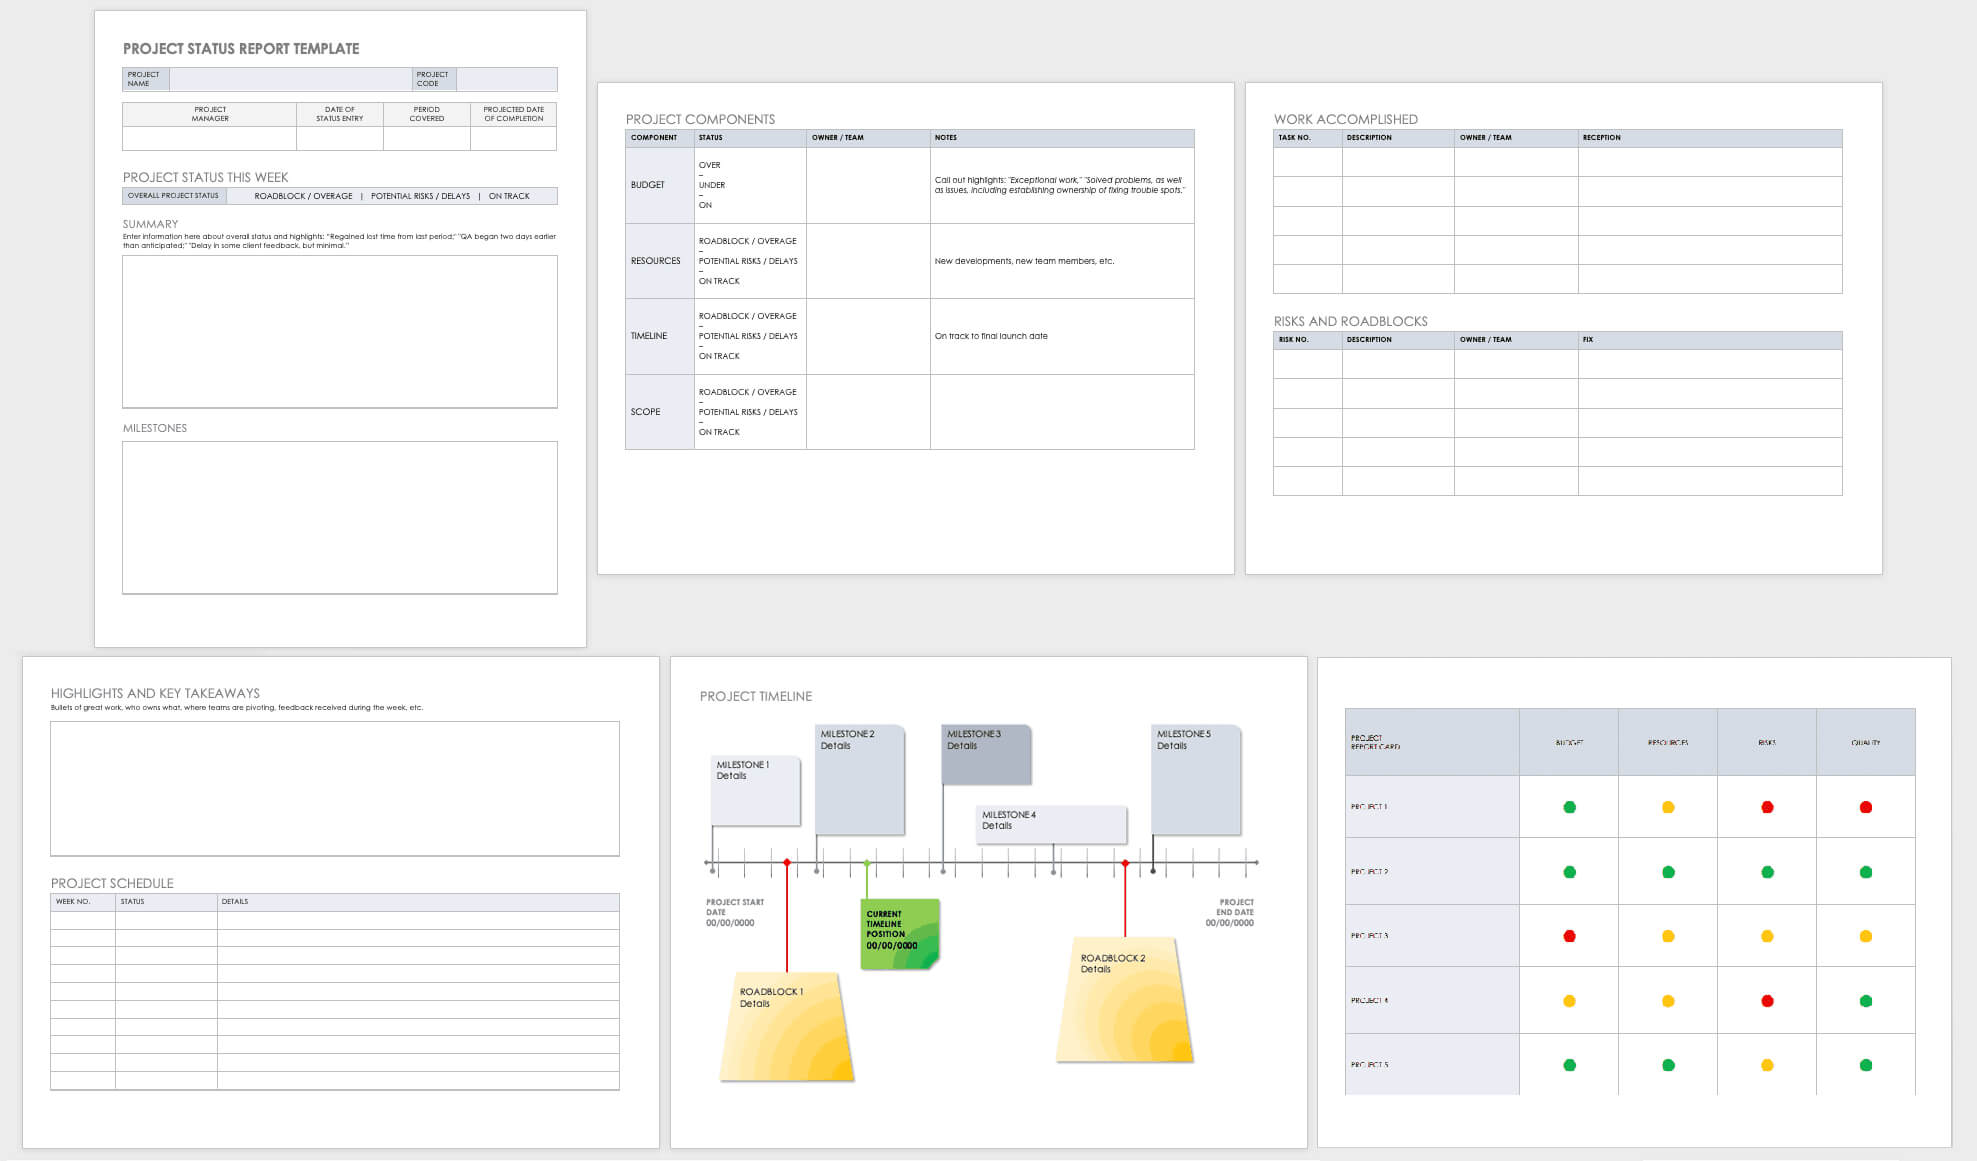 Free Project Report Templates | Smartsheet For Simple Project Report Template